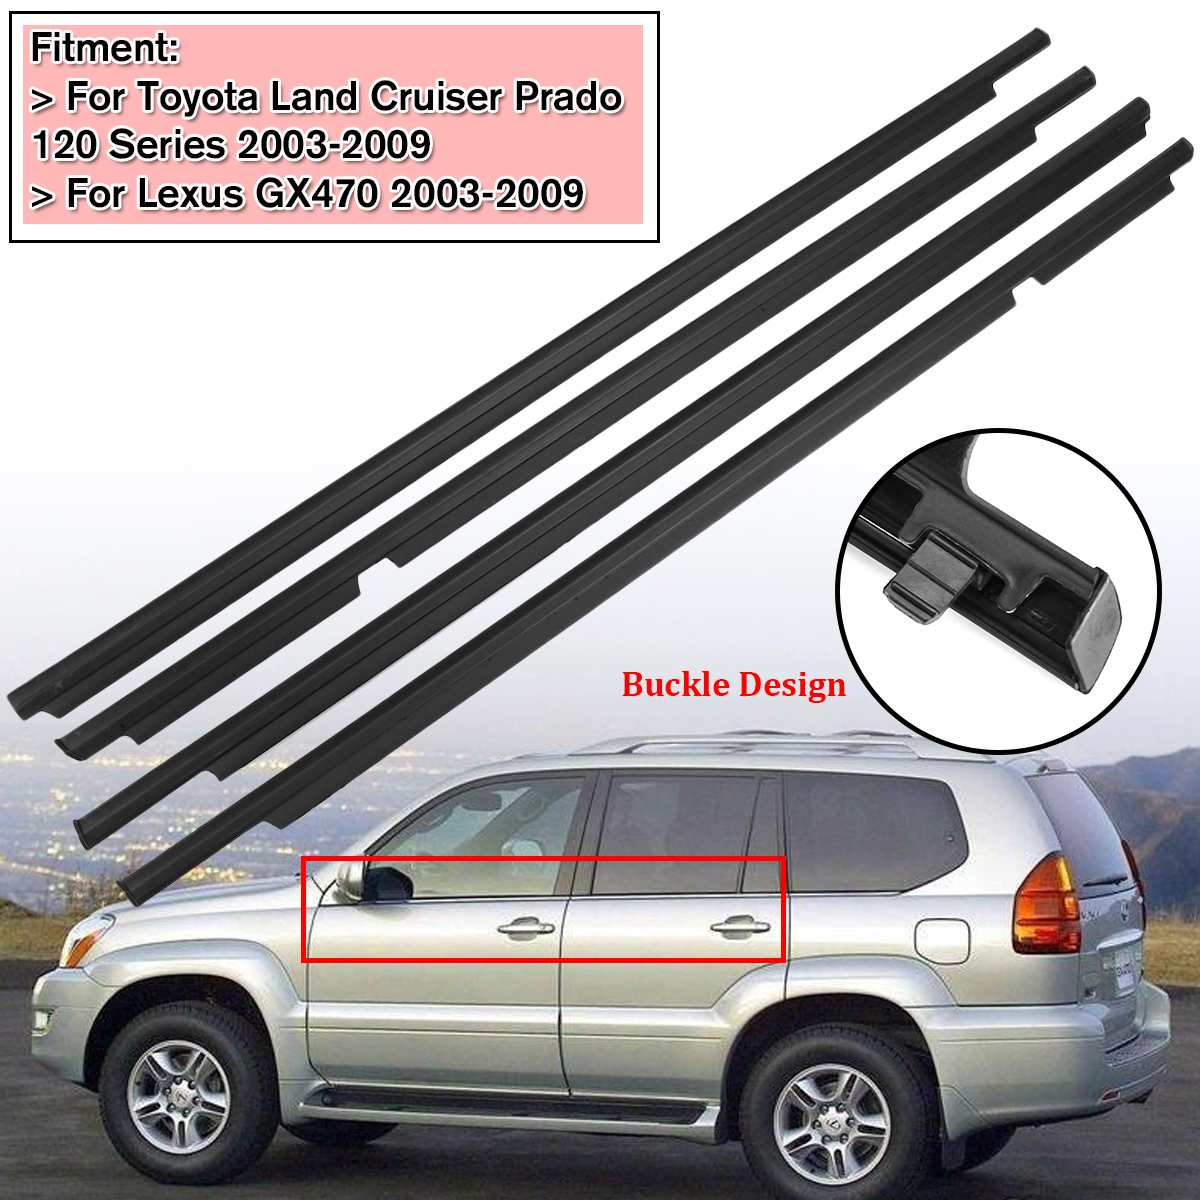 NEW 4Pcs Weatherstrips Door Belts Seal Weather Strips for <font><b>Toyota</b></font> Land Cruiser 120 Prado 2003-2009 For Lexus GX470 2003-2009 image